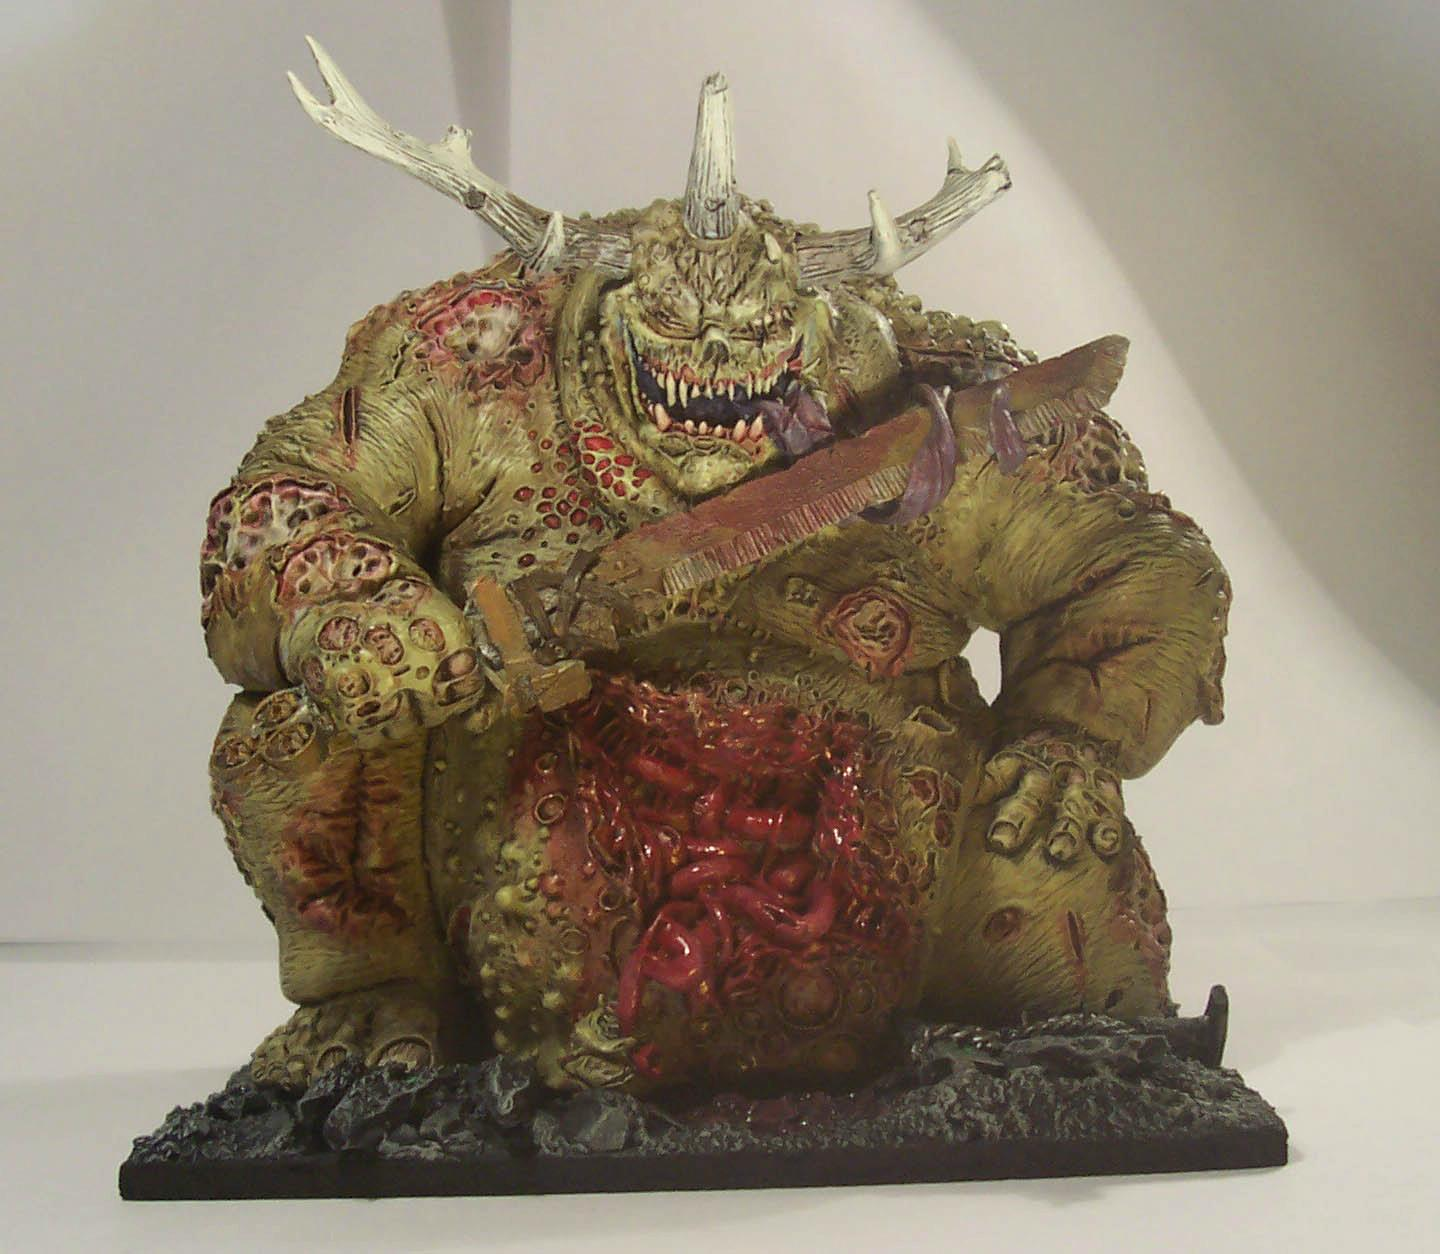 Bloated, Daemons, Forge World, Greater Daemon, Nurgle